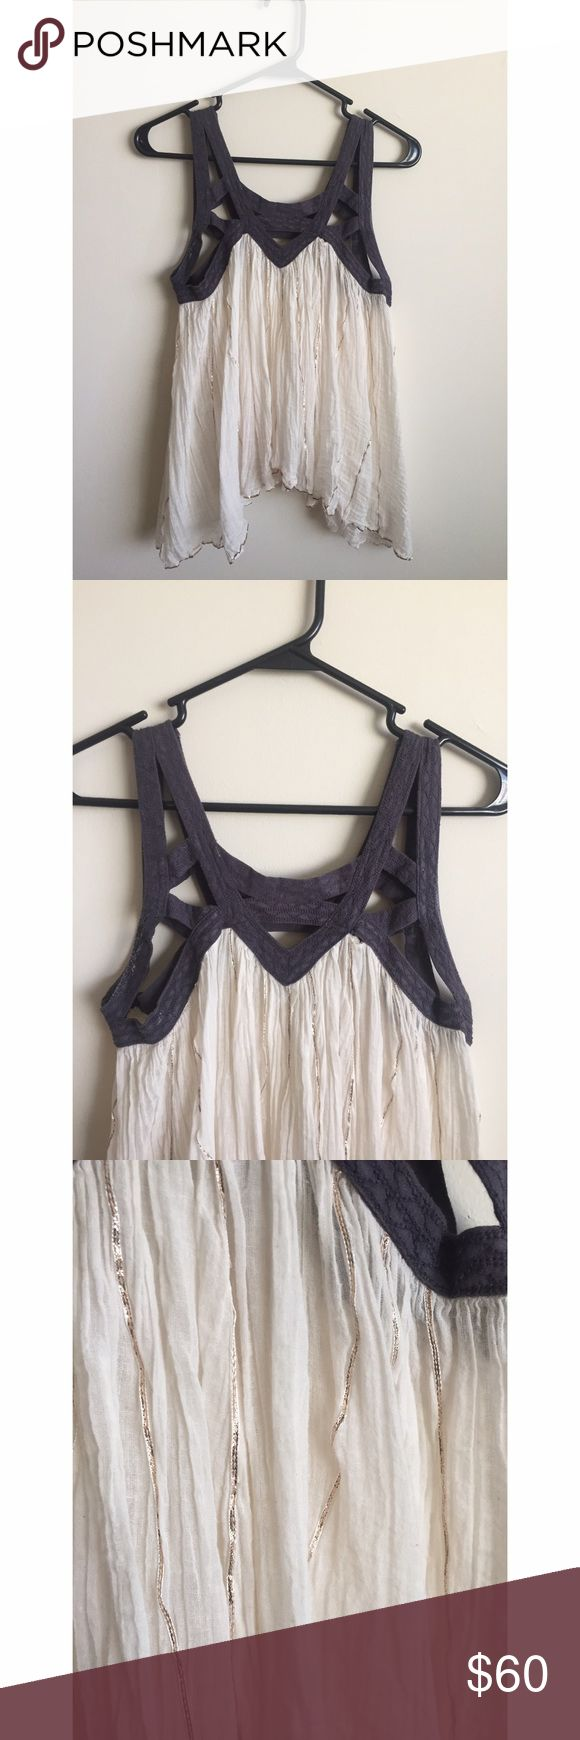 Free People tank top Deep purple strappy top with gold tinsel. Only worn once. Off white color Free People Tops Tank Tops